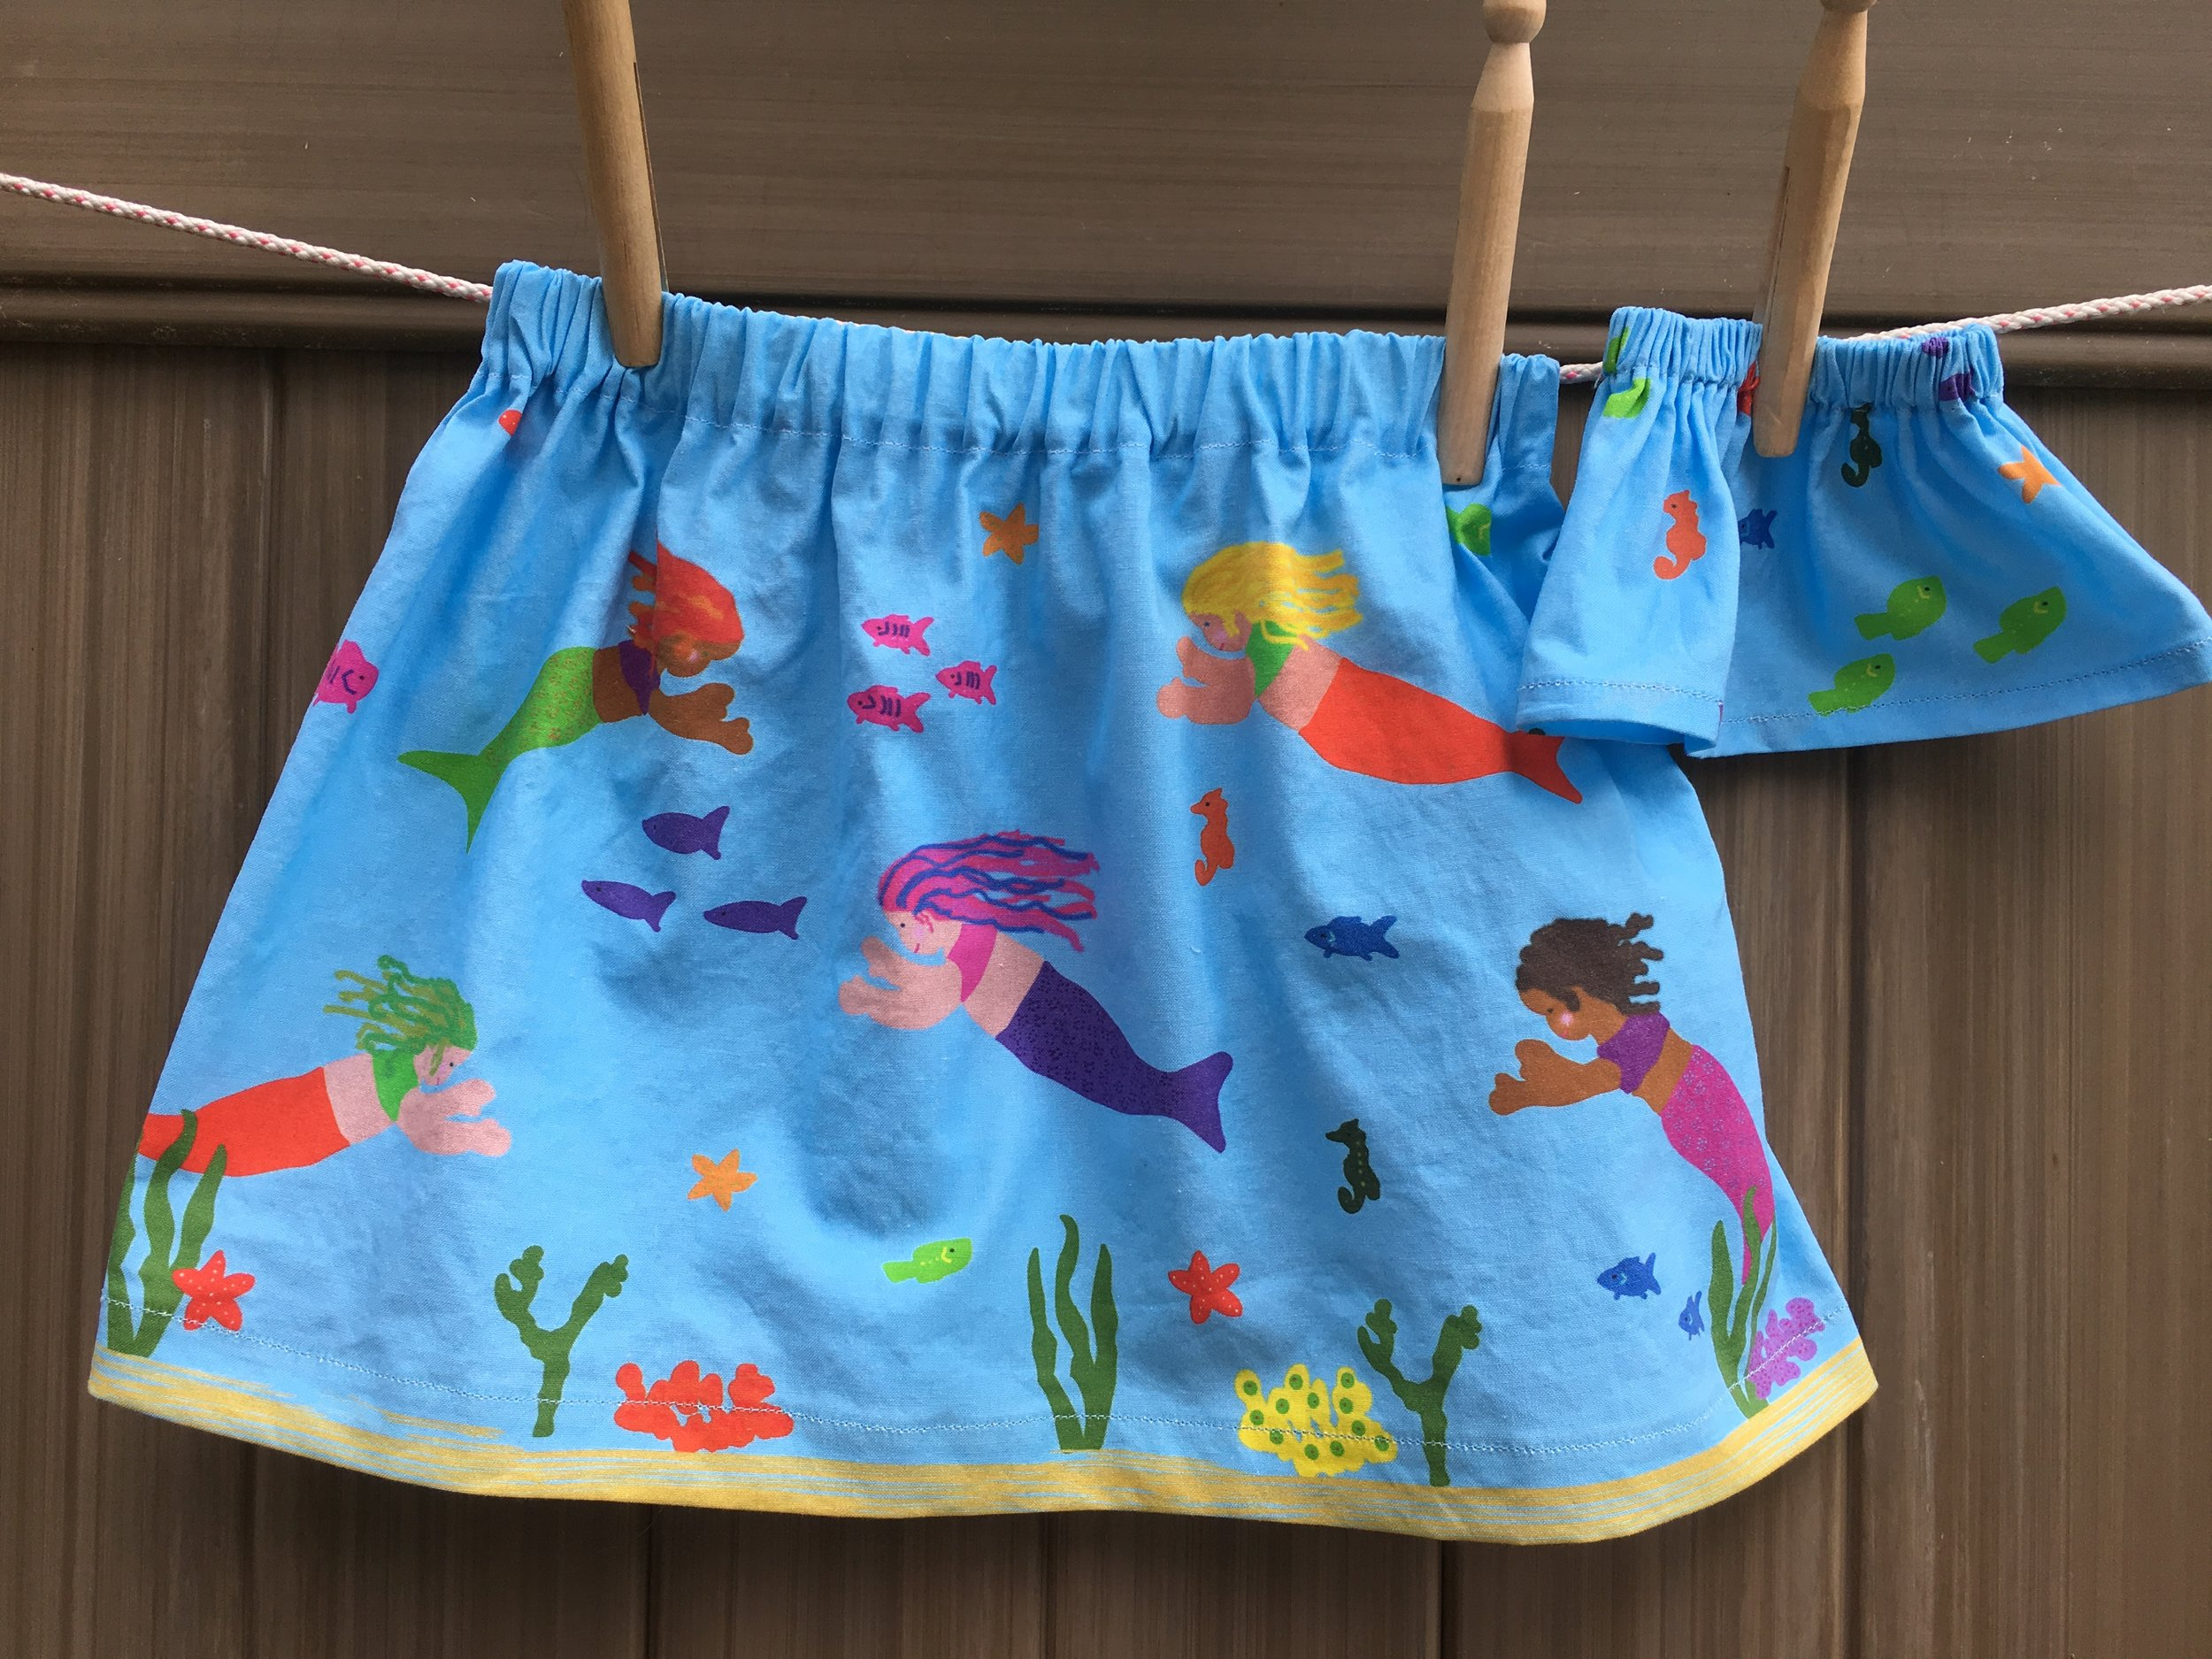 Mermaid Skirts for child and doll.  (Click link to open the tutorial). The mermaid fabric can be purchased from my  Spoonflower Shop .